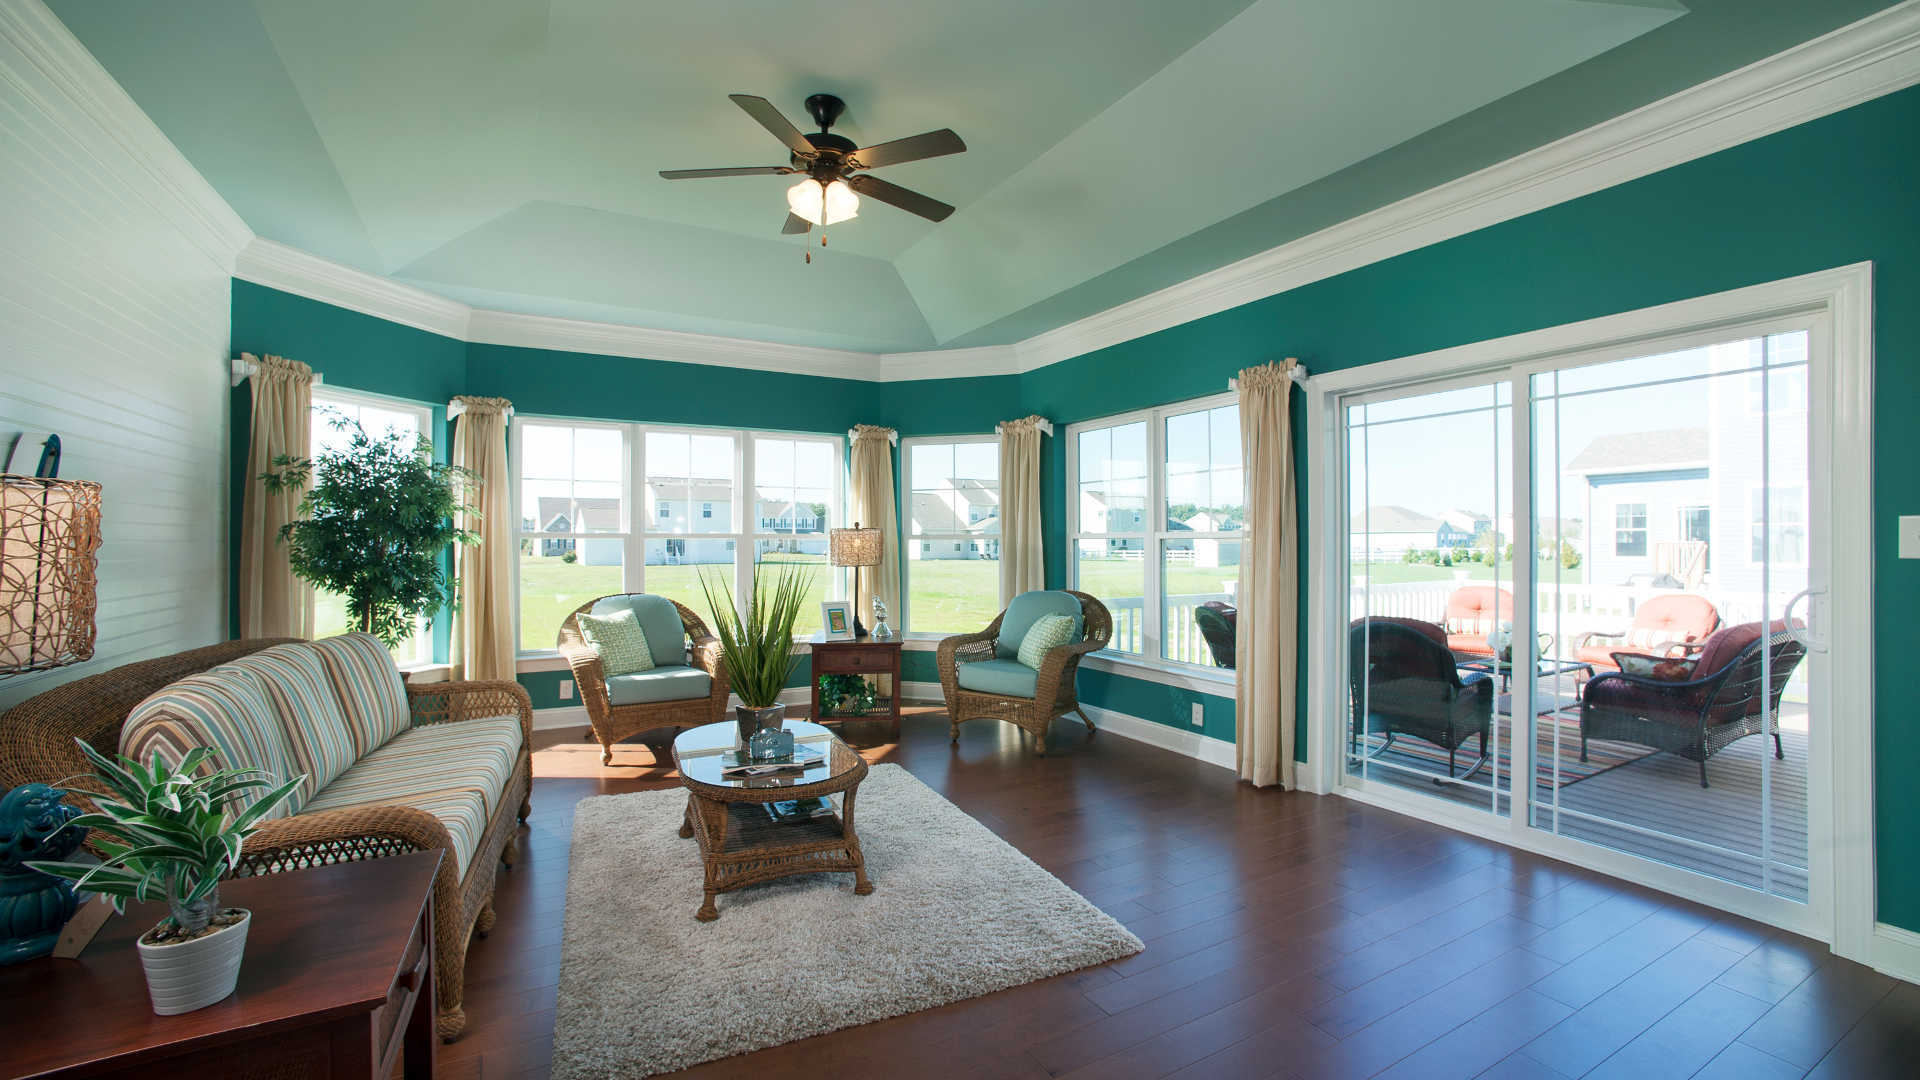 New Homes in Delaware from Insight Homes